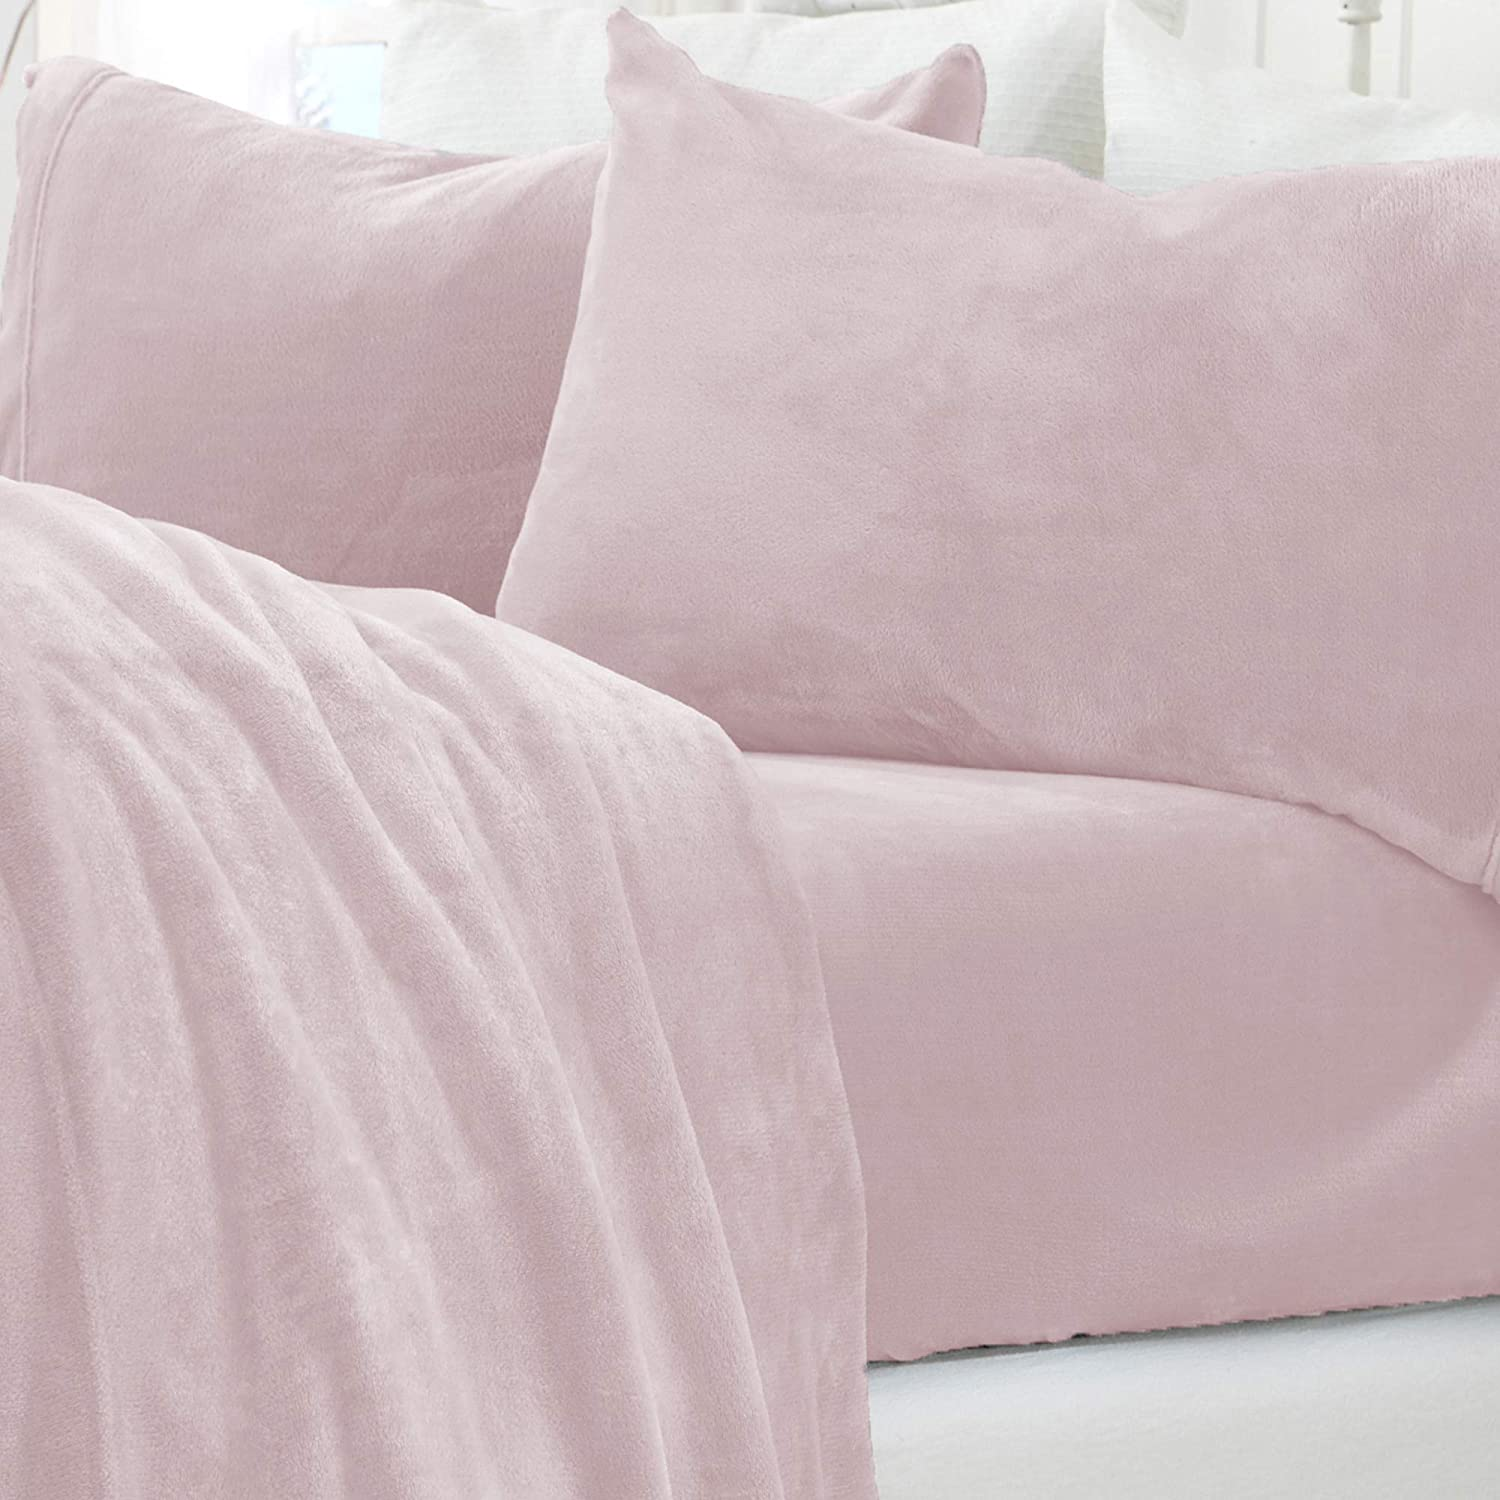 Great Bay Home Extra Soft Cozy Velvet Plush Sheet Set. Deluxe Bed Sheets with Deep Pockets, $44 @amazon.com